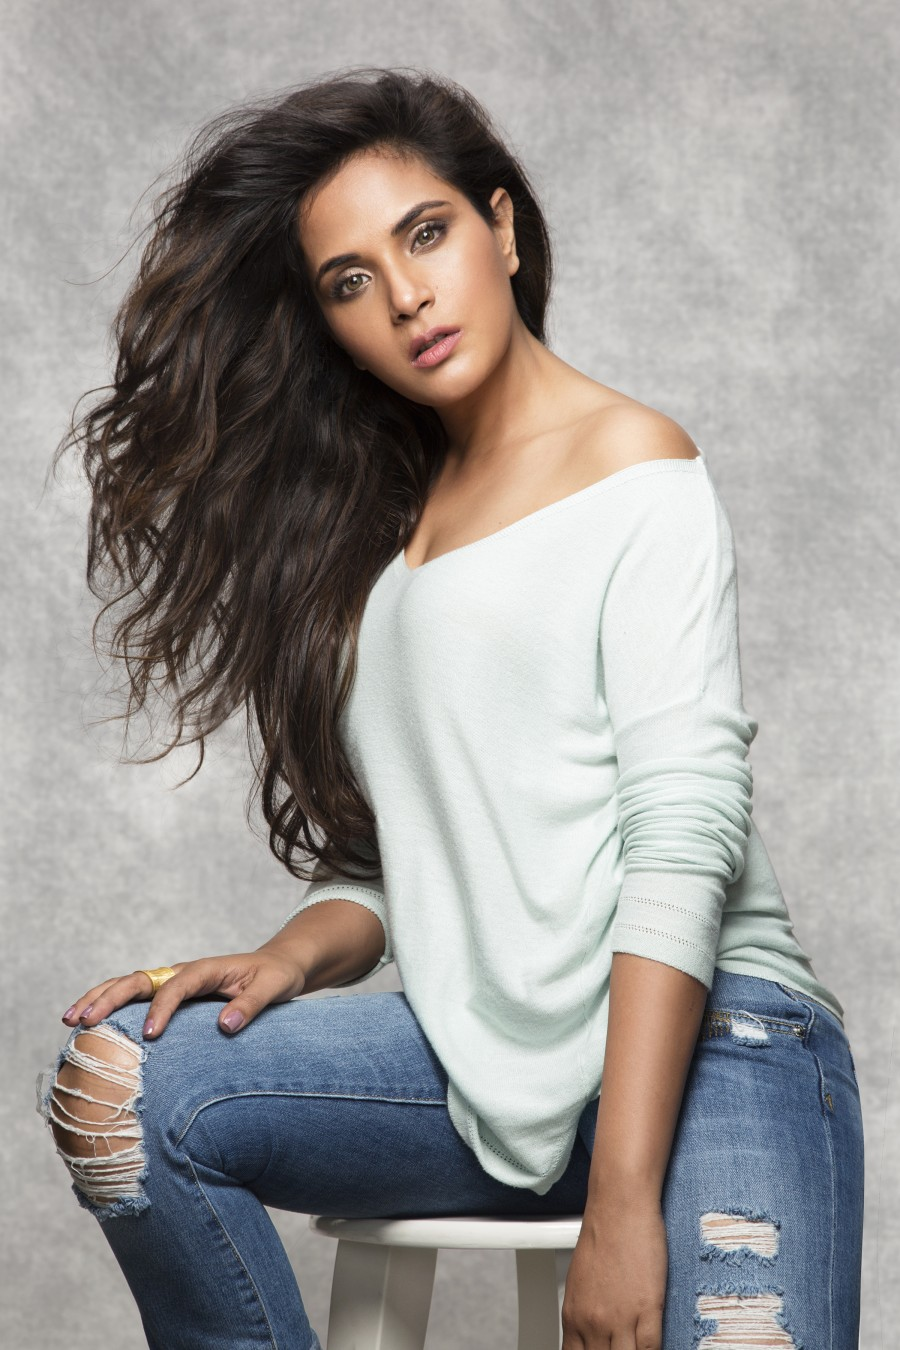 Richa Chadha,actress Richa Chadha,Richa Chadha pics,Richa Chadha images,Richa Chadha photos,Richa Chadha stills,Richa Chadha pictures,Richa Chadha latest pics,Richa Chadha latest images,Richa Chadha latest photos,Richa Chadha latest stills,Richa Chadha la